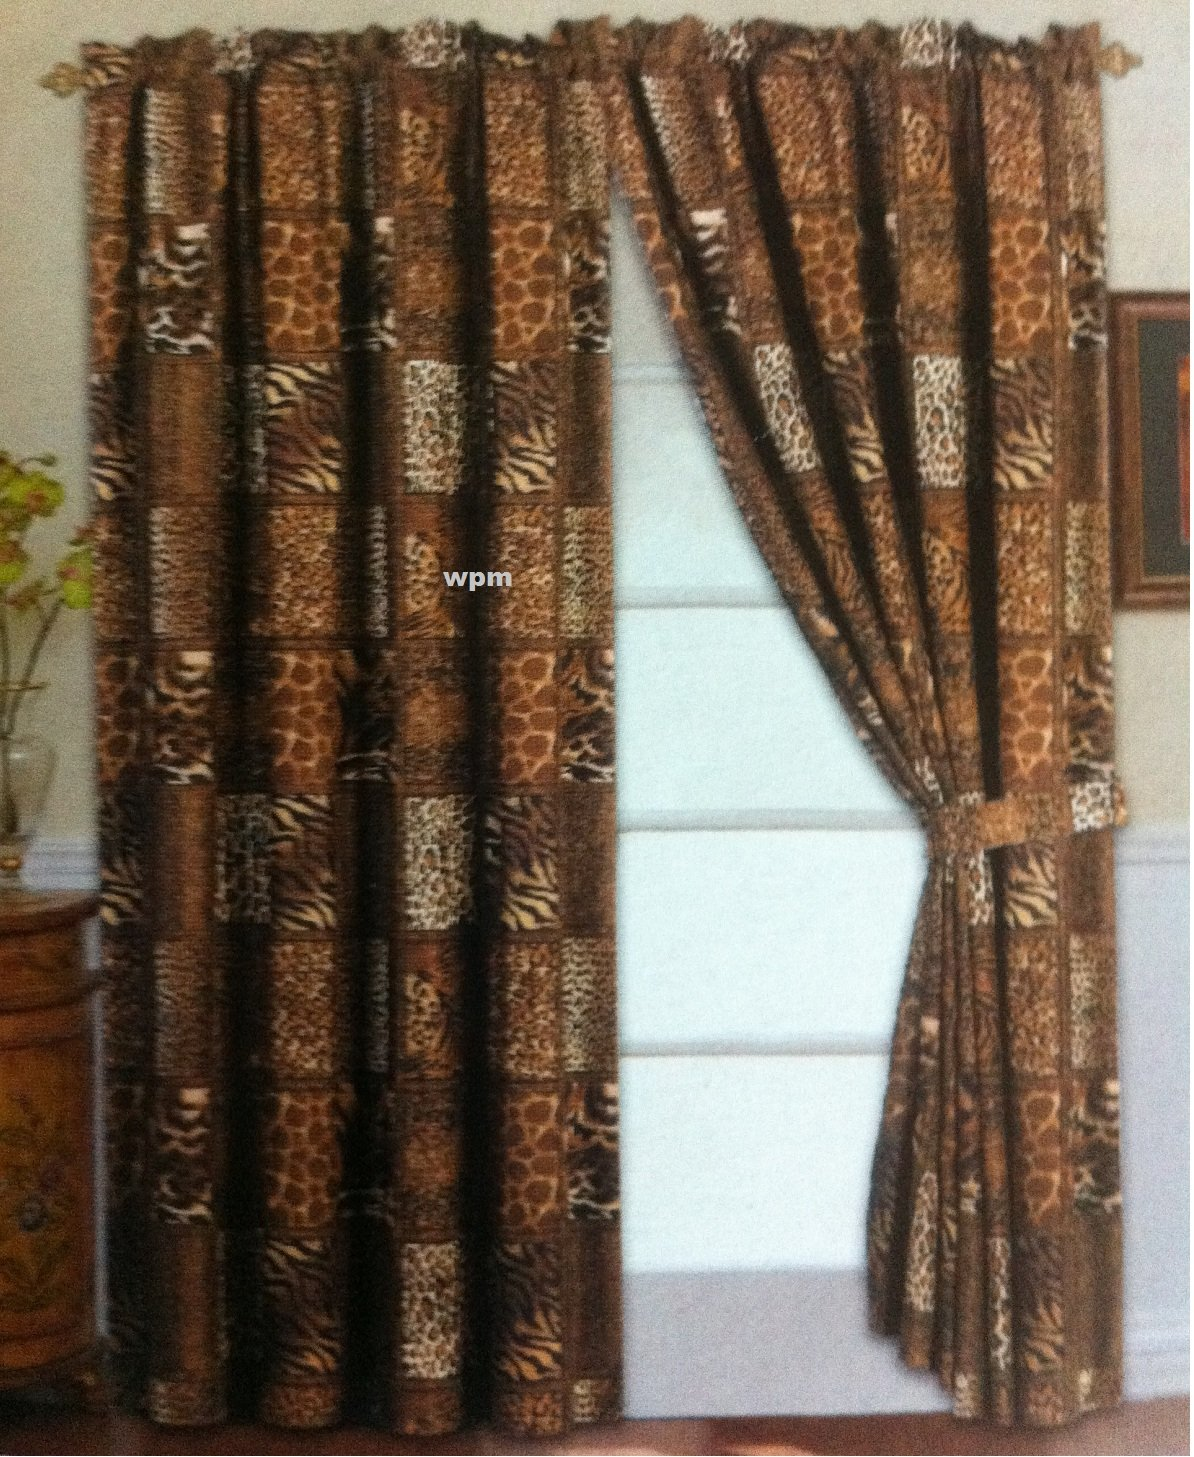 Greatest Amazon.com: 4 Piece Curtain Set: 2 Jungle Safari Brown Giraffe  FU05